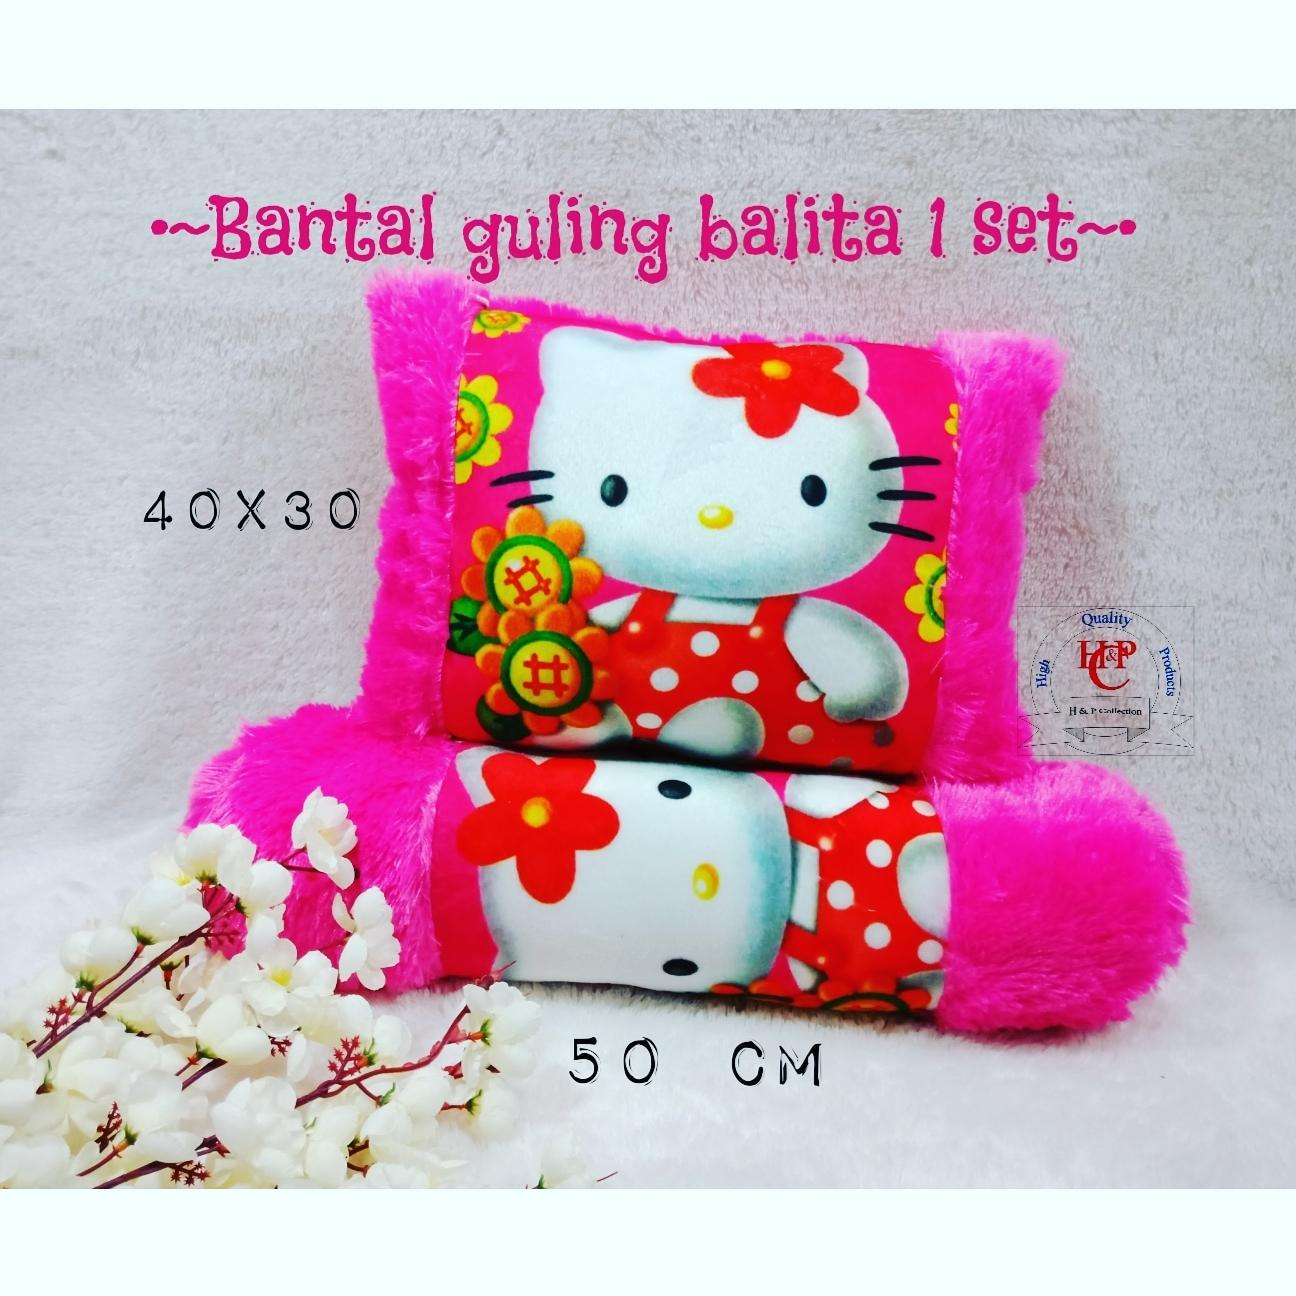 Bantal guling balita Hello kitty 1 set